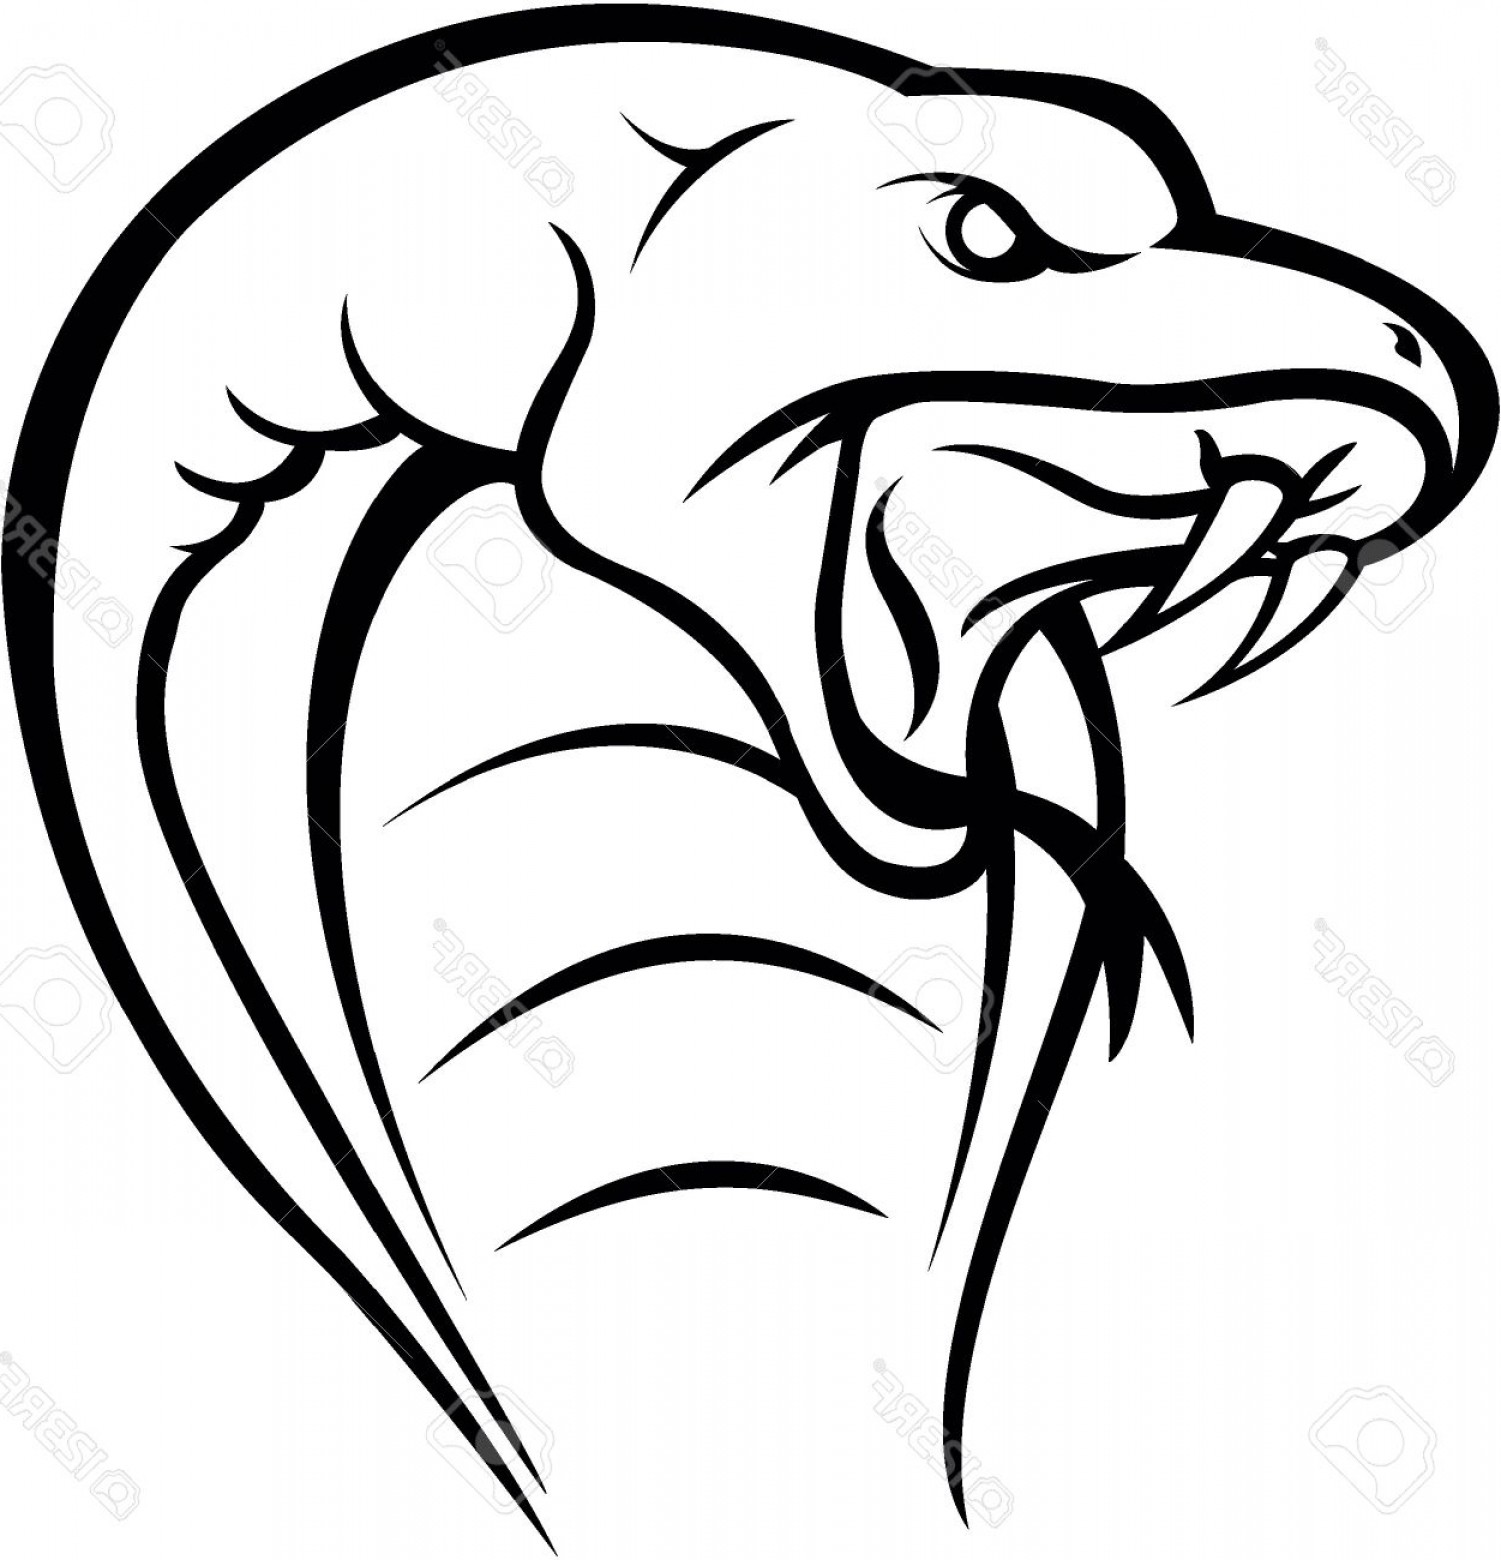 1501x1560 Snake Head Drawing Cobra Snake Head Royalty Free Cliparts Vectors